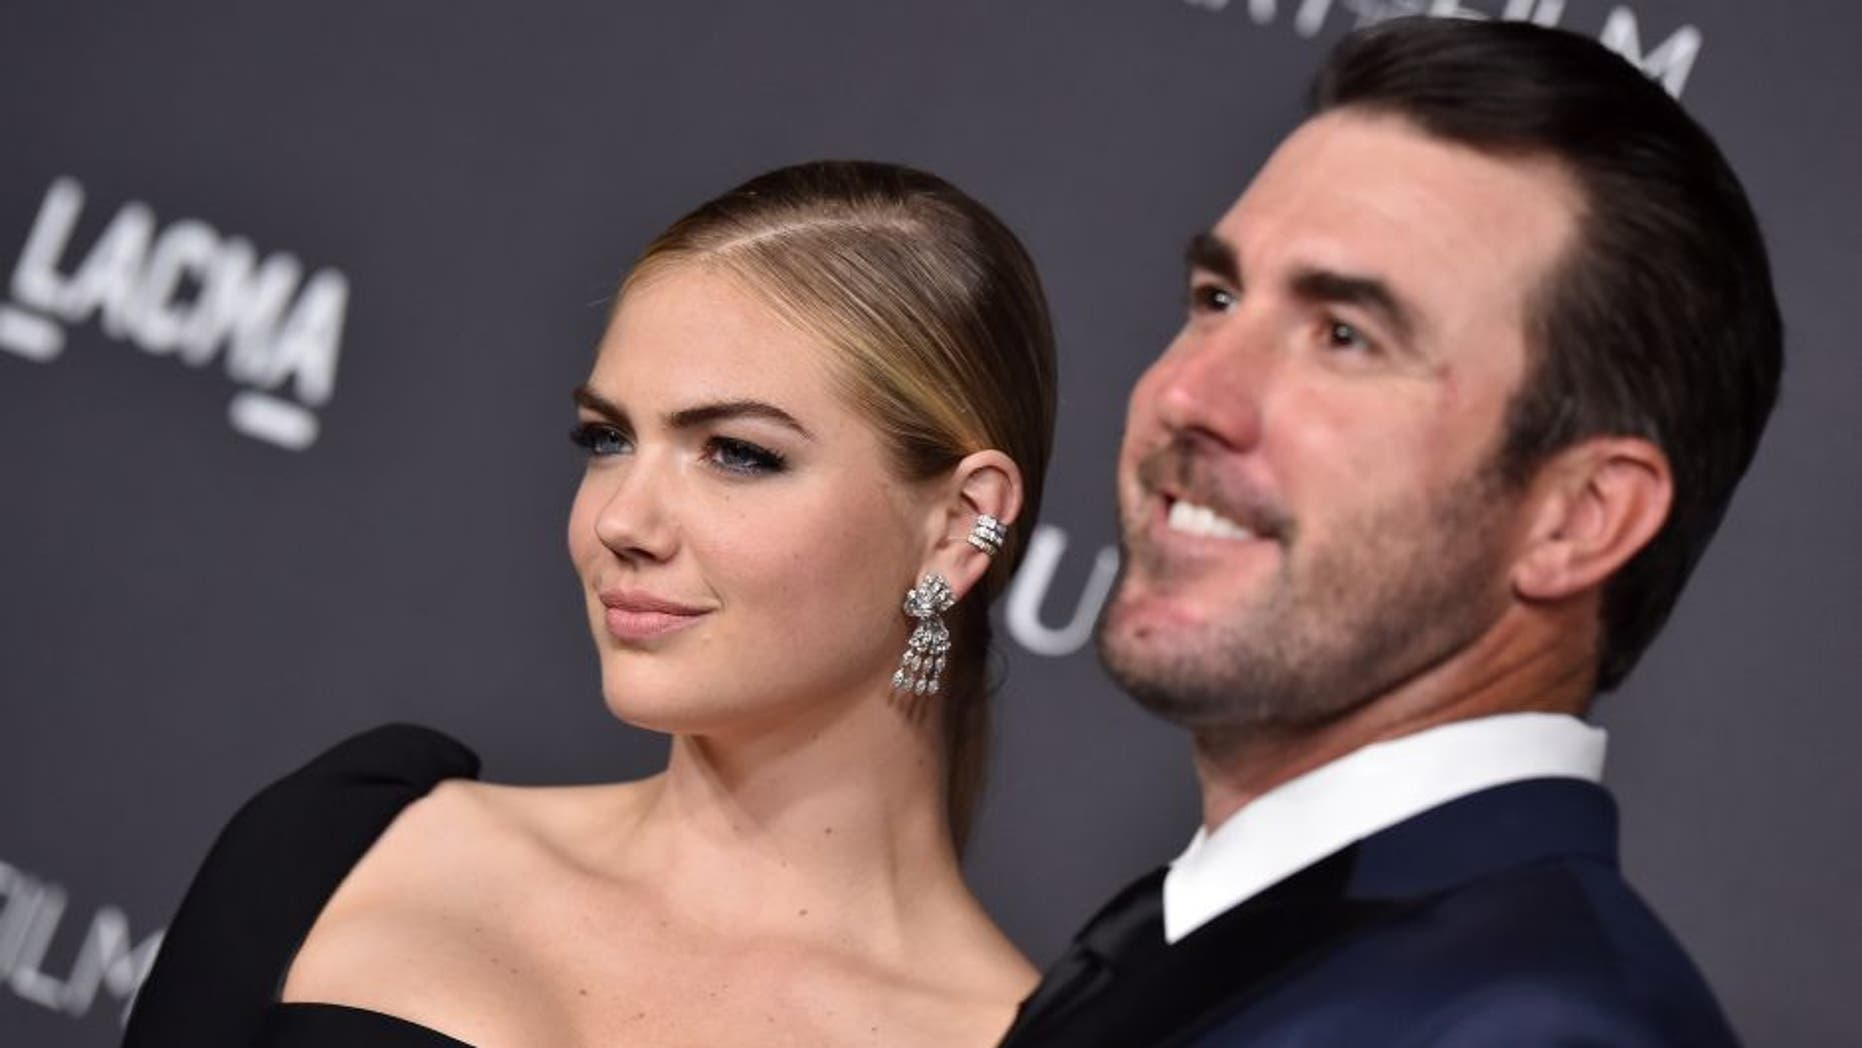 LOS ANGELES, CA - OCTOBER 29: Model Kate Upton (L) and MLB player Justin Verlander attend the 2016 LACMA Art + Film Gala honoring Robert Irwin and Kathryn Bigelow presented by Gucci at LACMA on October 29, 2016 in Los Angeles, California. (Photo by Axelle/Bauer-Griffin/FilmMagic)